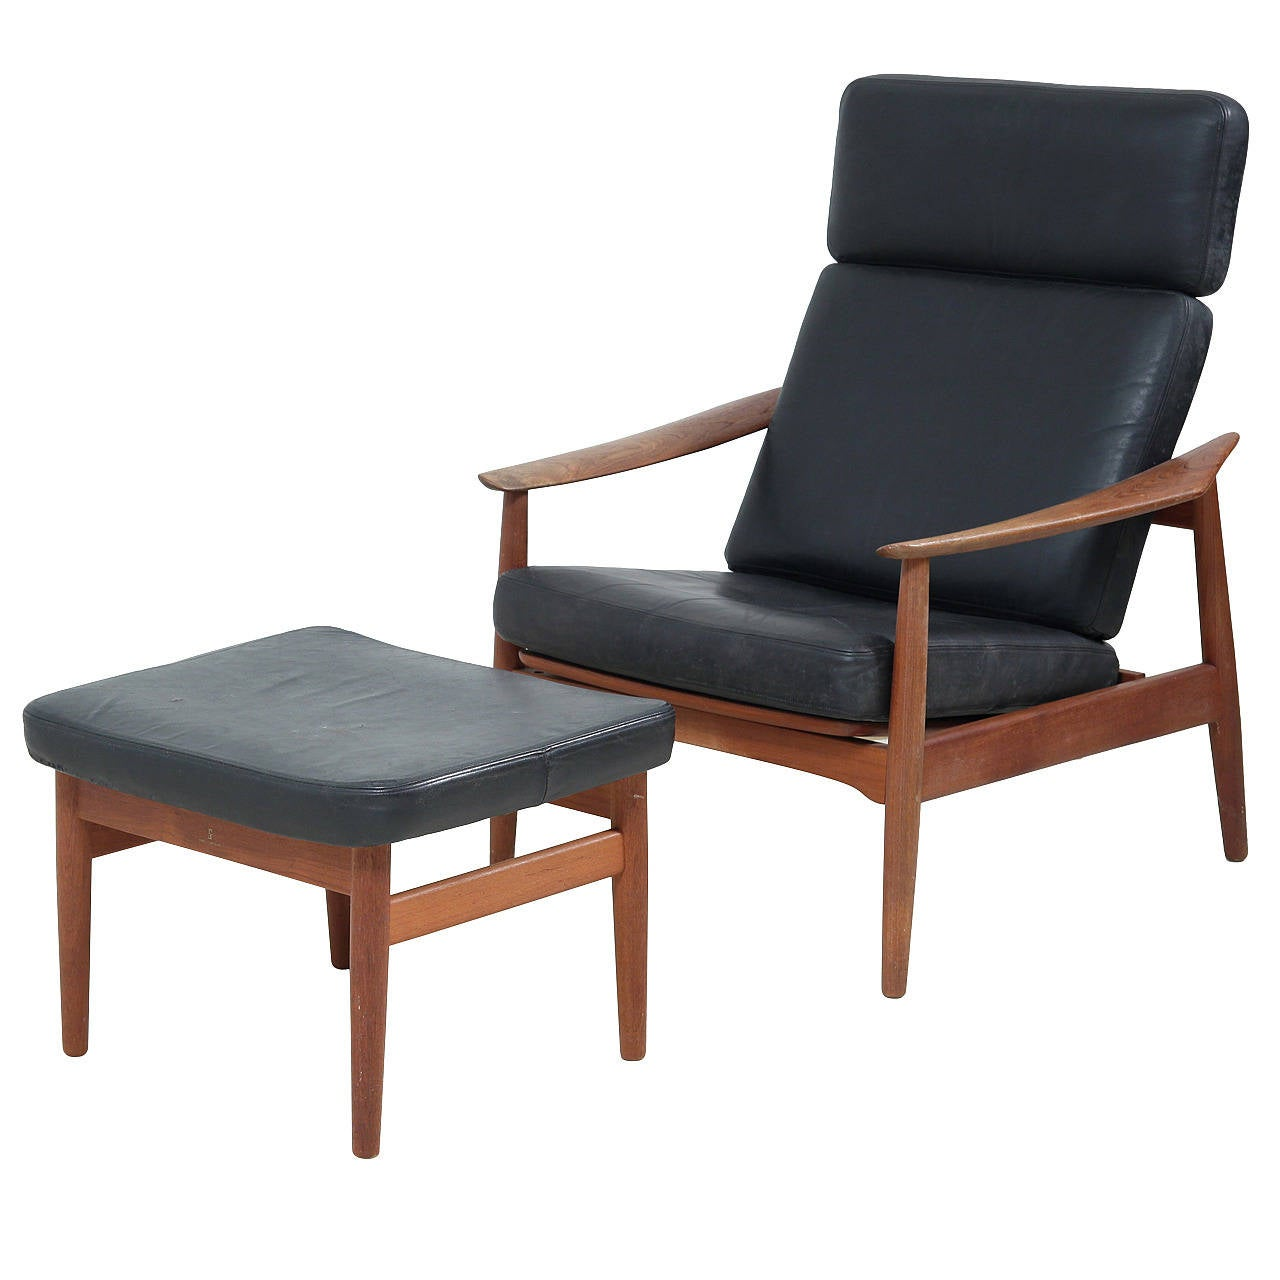 Reclining Arne Vodder Easy Chair and Footstool model FD 164